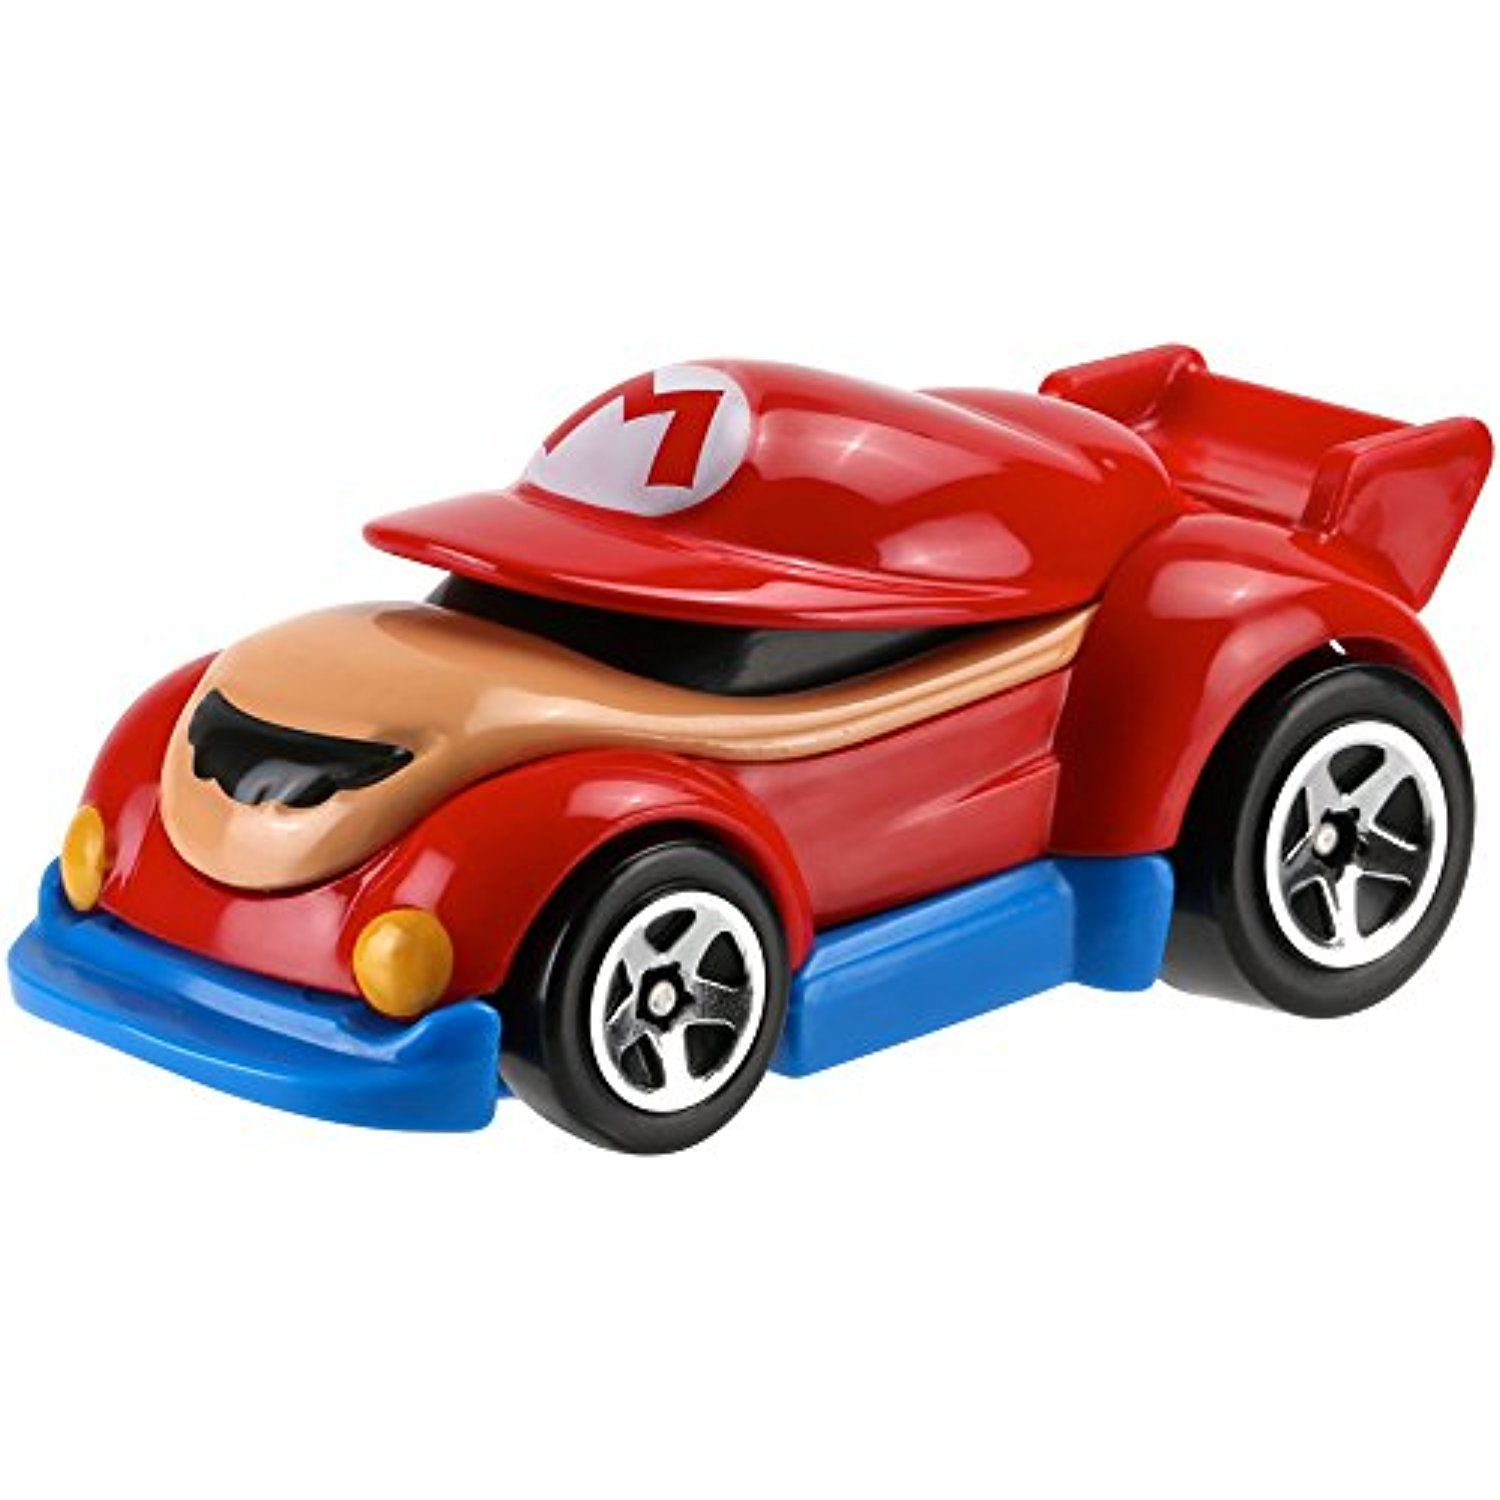 Hot Wheels Hot Wheels Mario Bros Mario Car Vehicle Read More Reviews Of The Product By Visiting The Link On T Hot Wheels Mattel Hot Wheels Hot Wheels Video